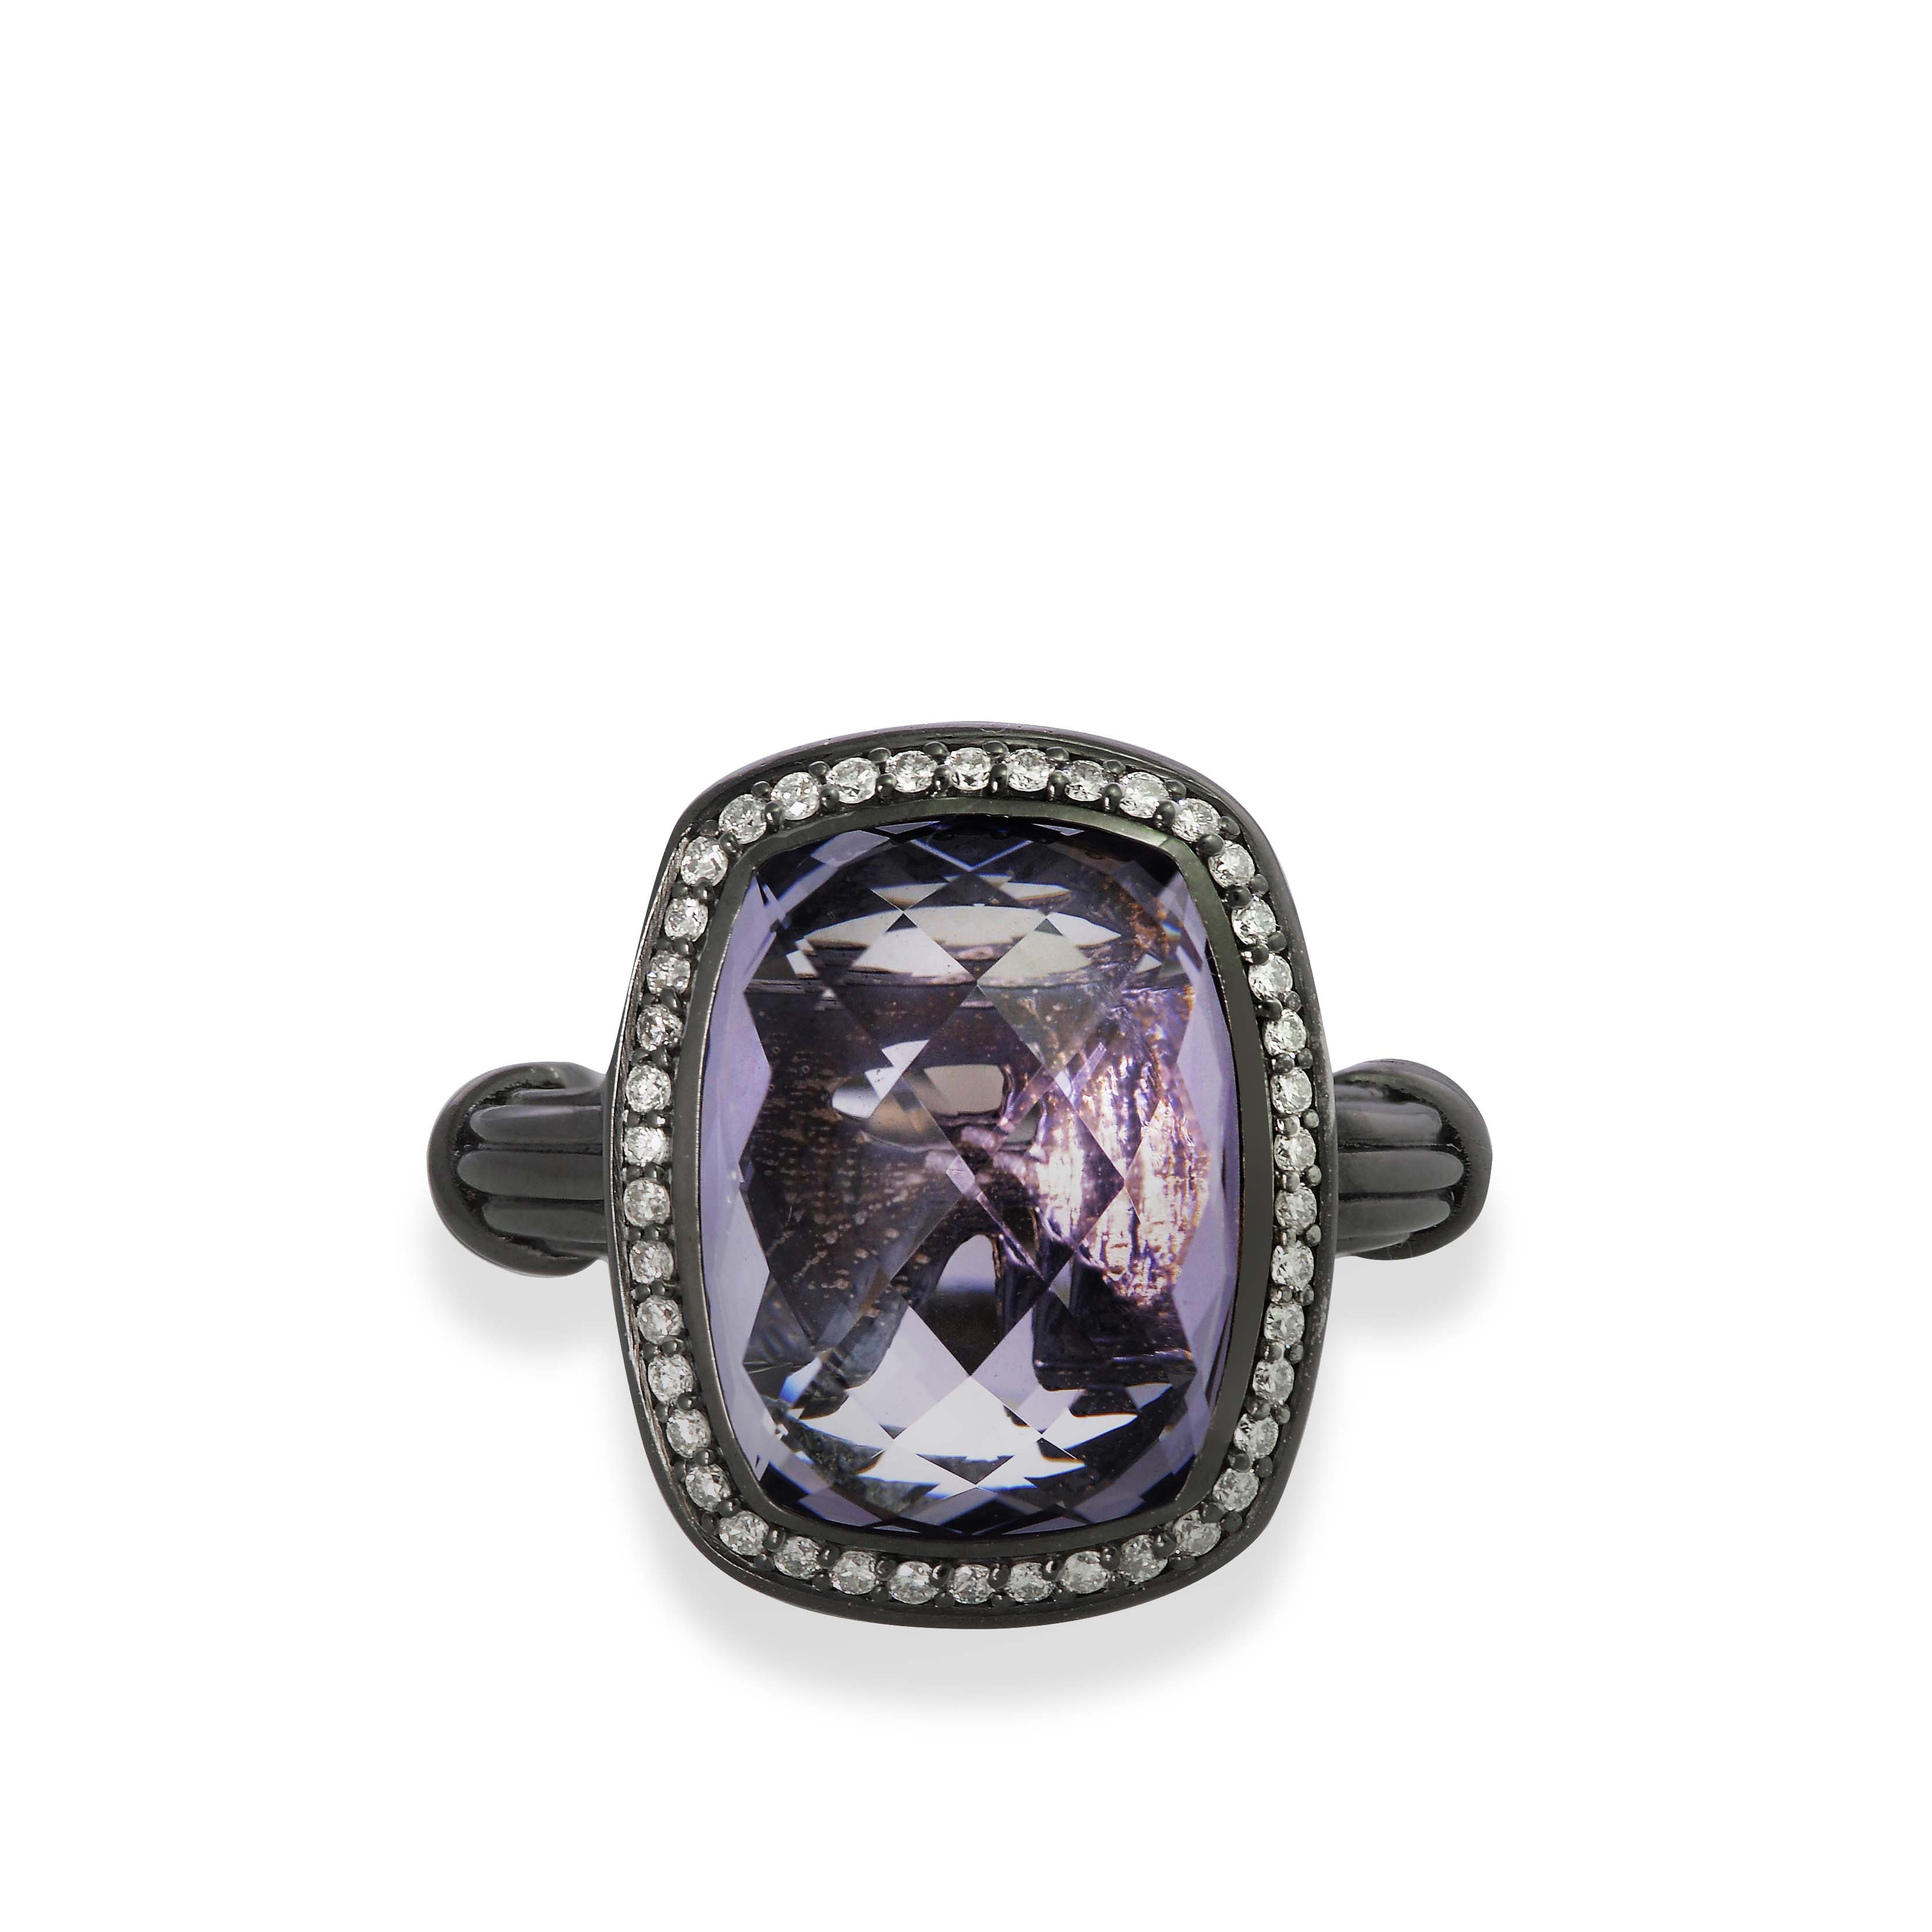 Fantasies Lavender Amethyst Halo Ring in ruthenium silver with diamonds